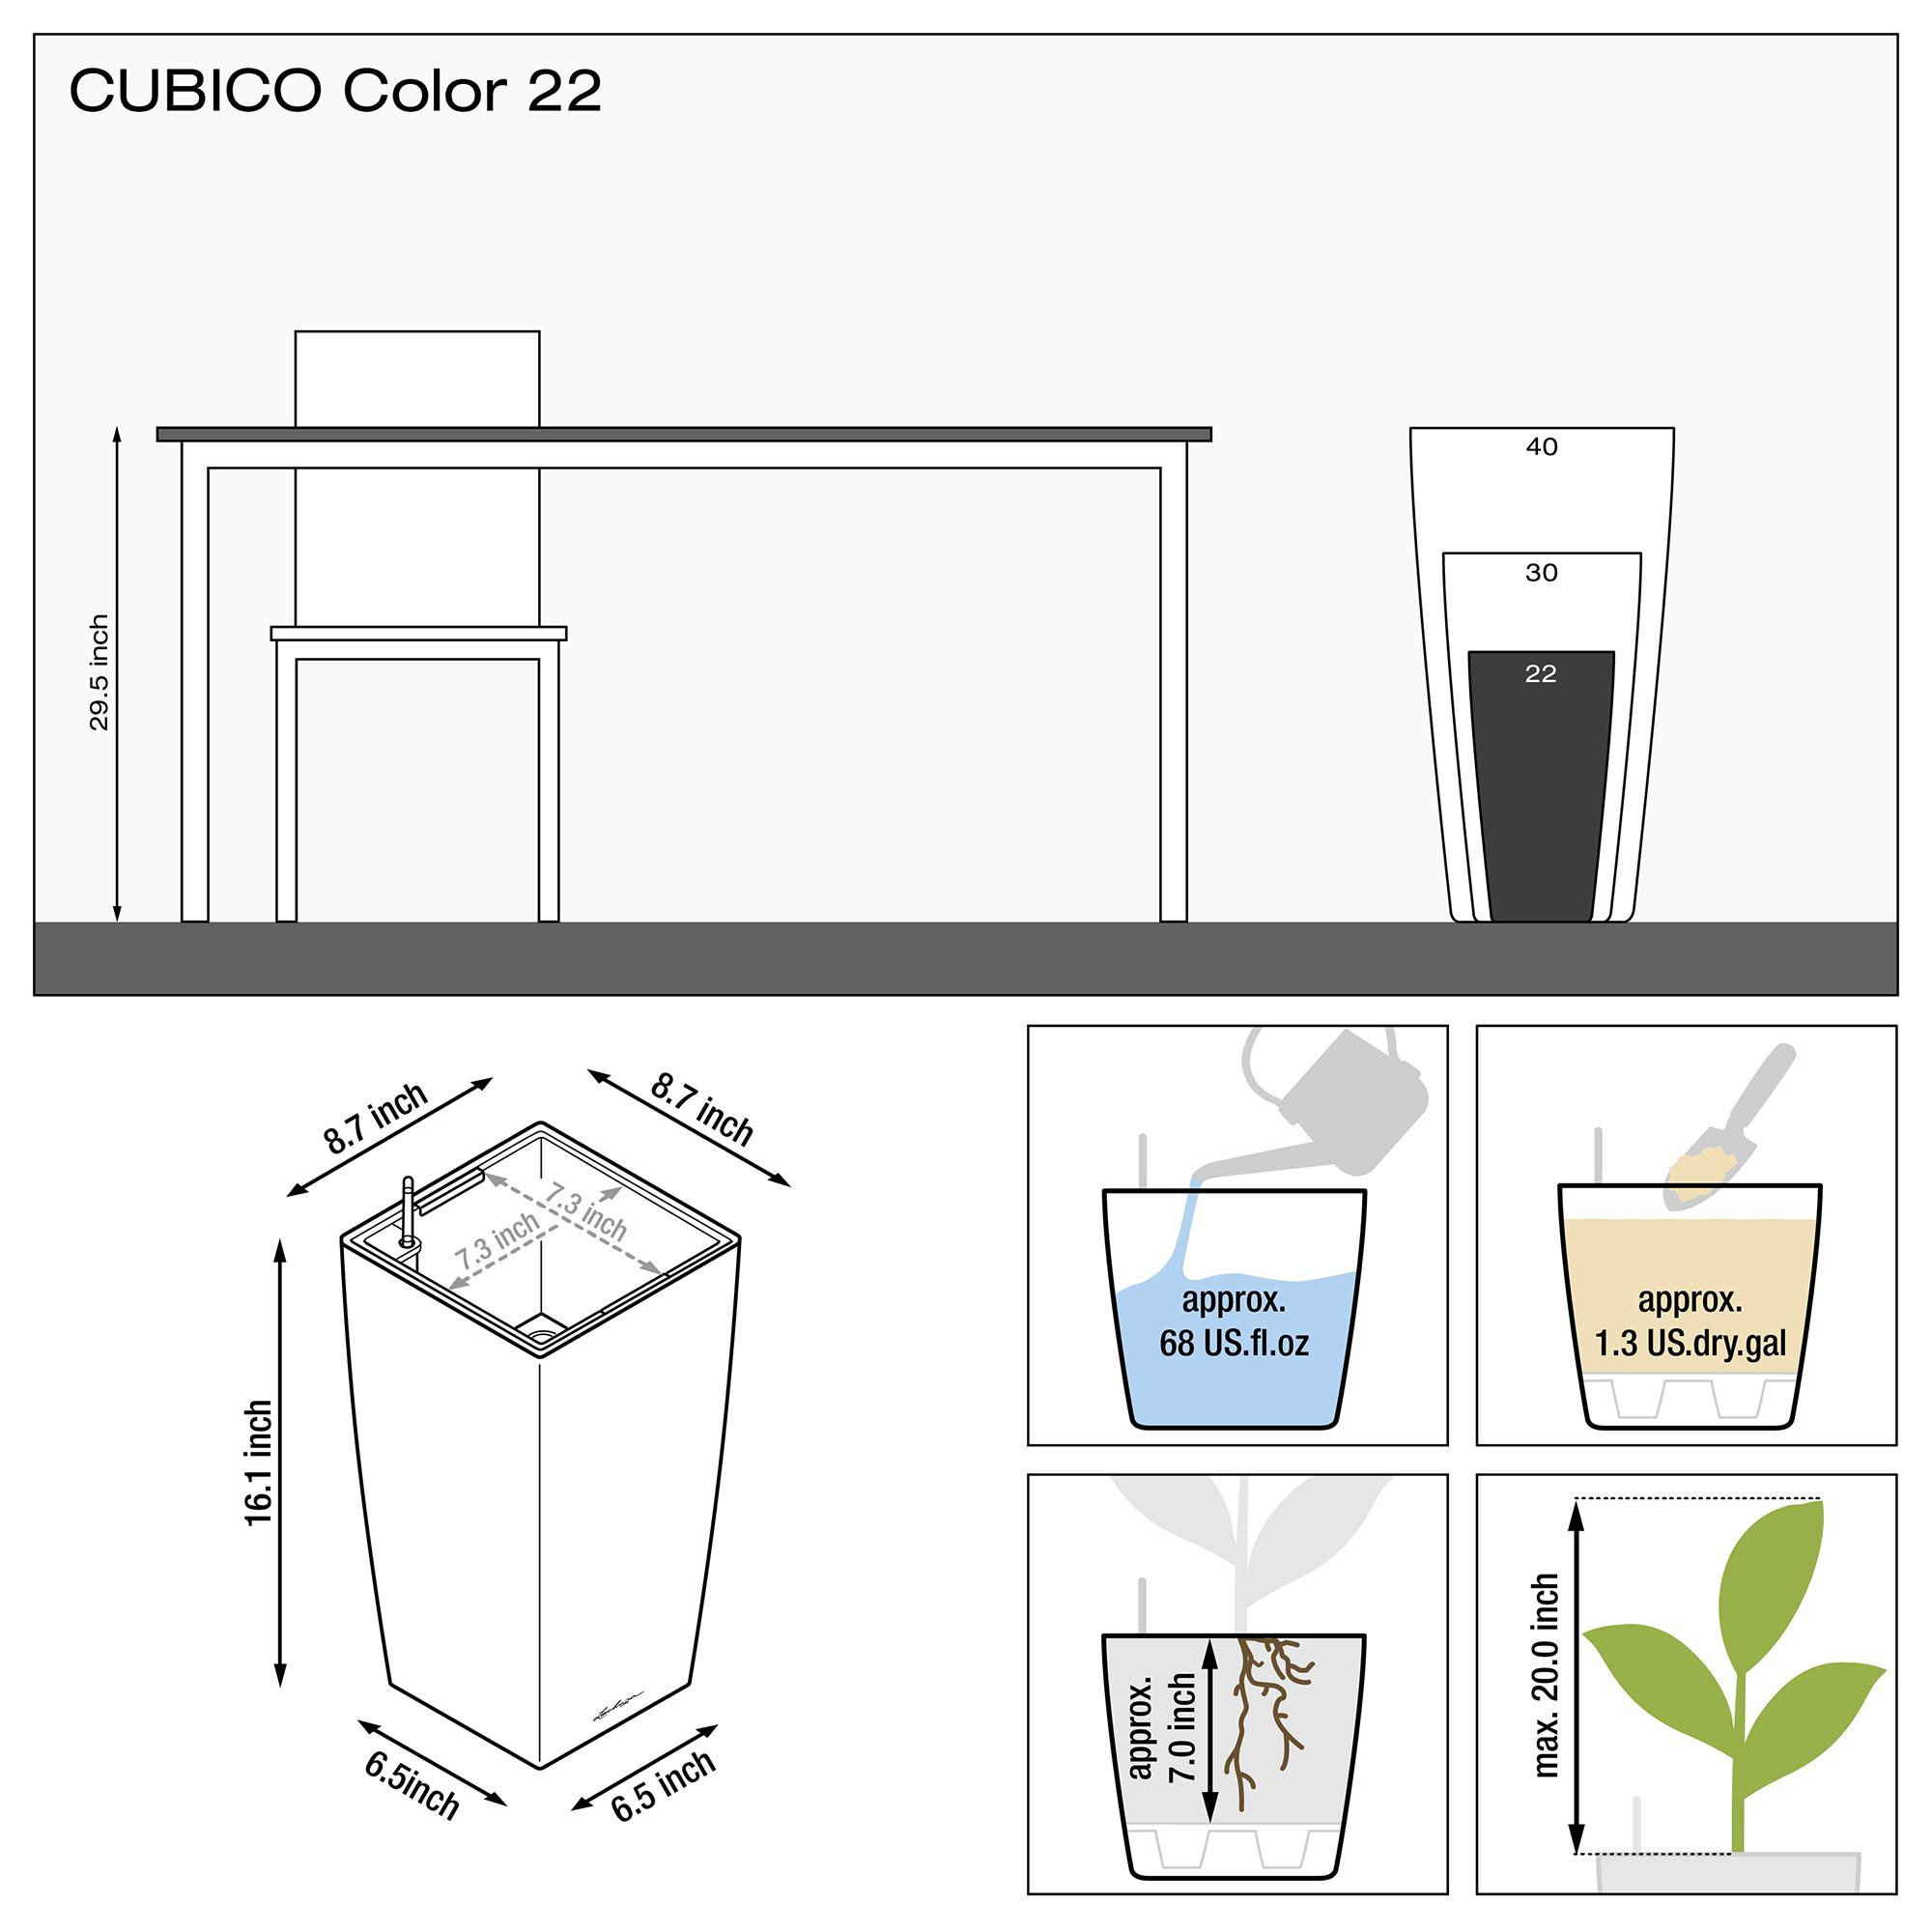 le_cubico-color22_product_addi_nz_us